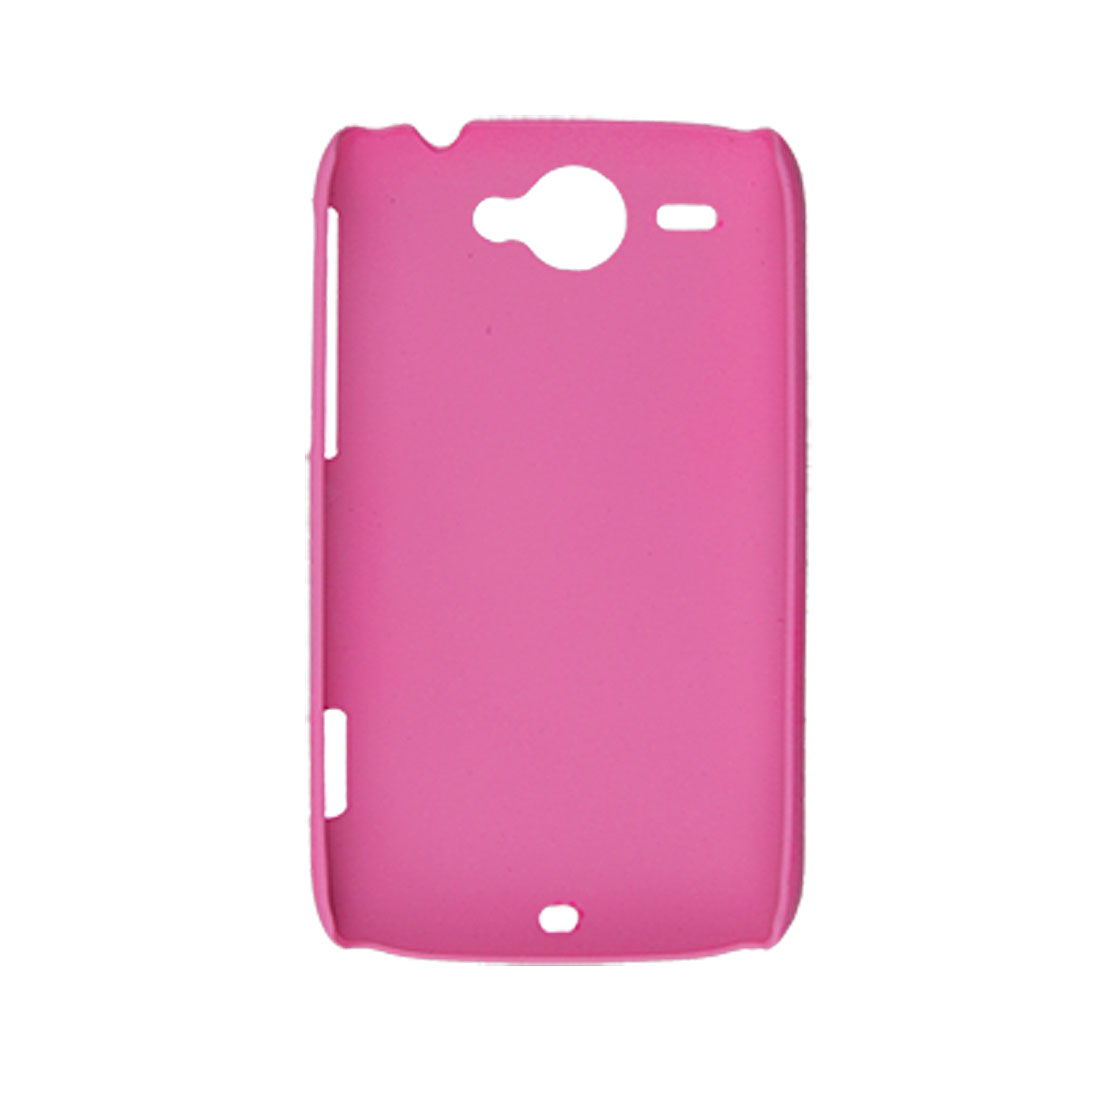 Protective Hard Pink Back Protector for HTC G8 A3333